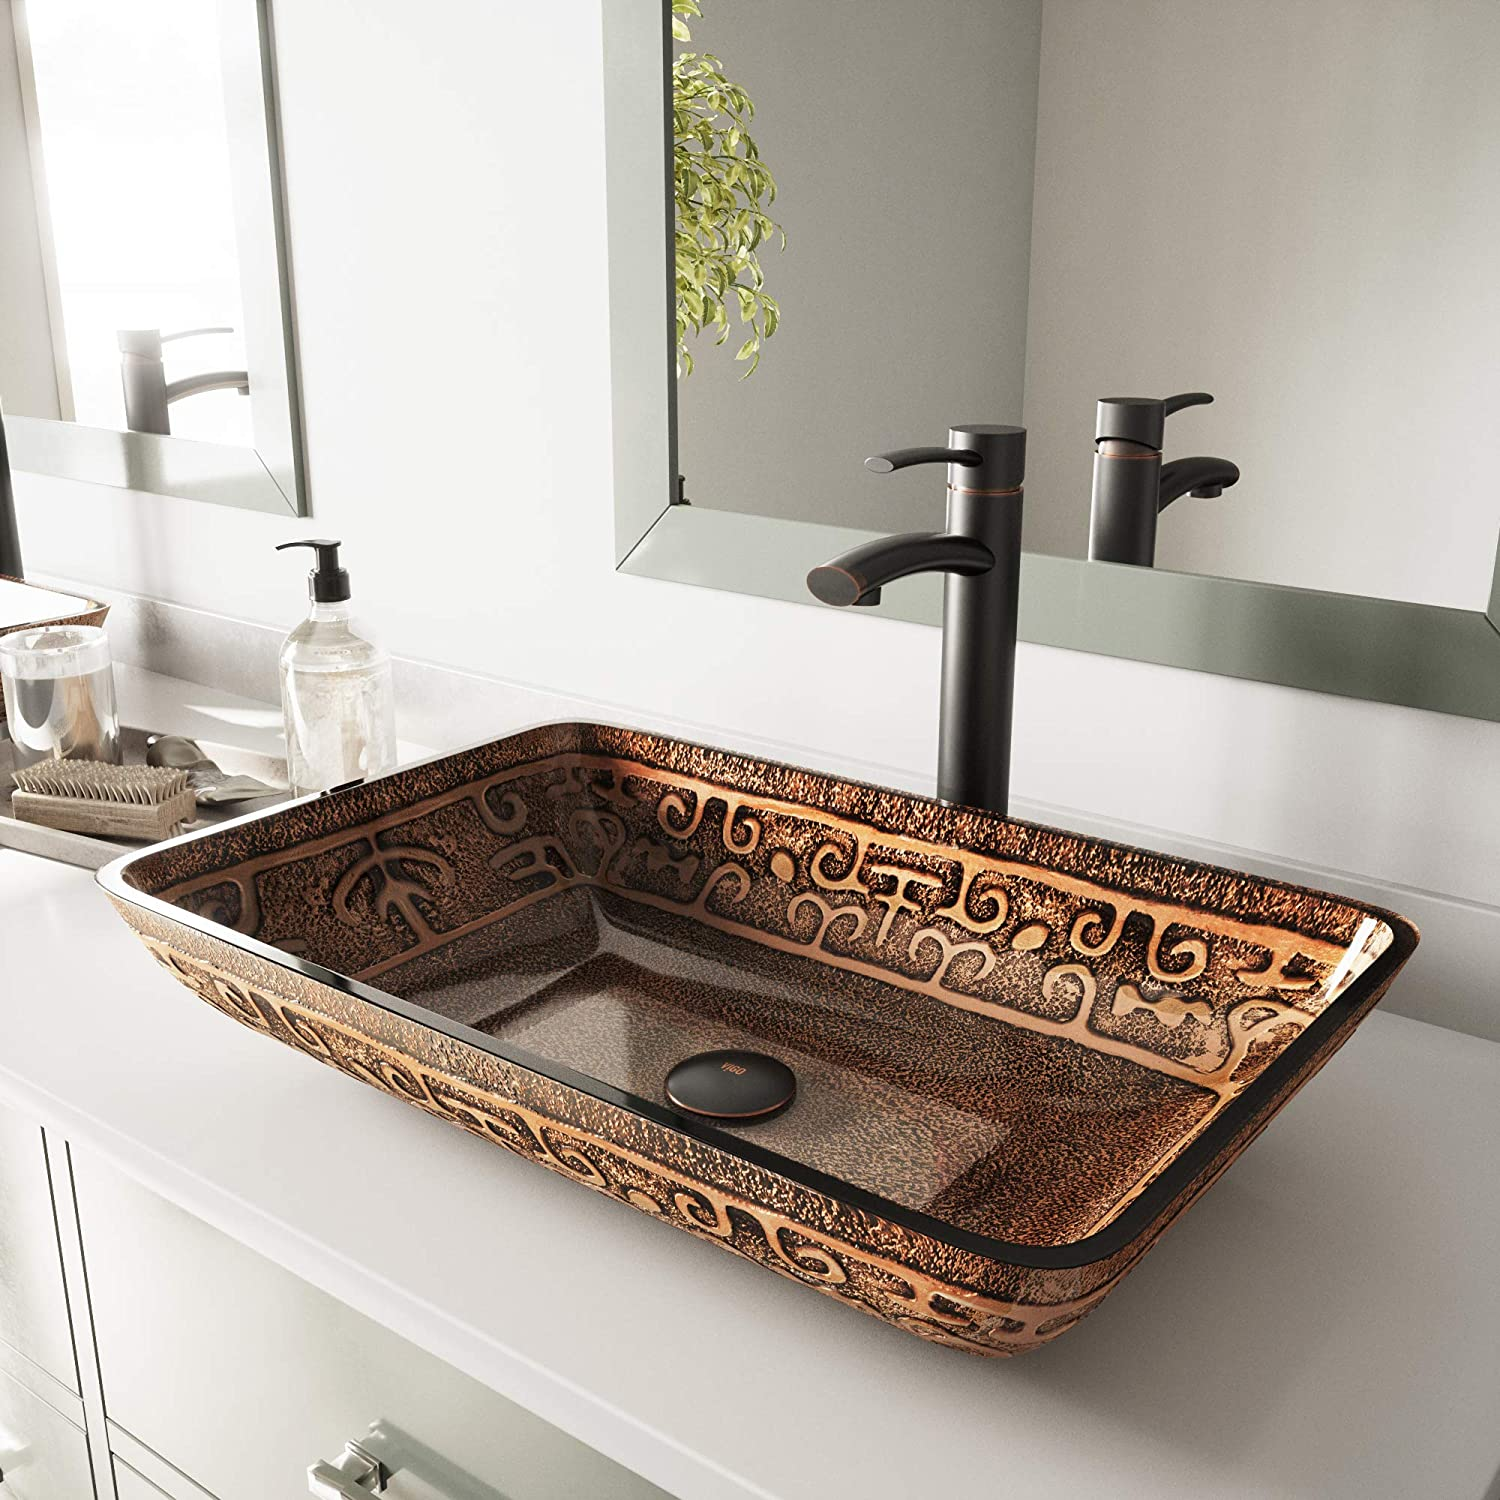 Vigo rectangular golden greek glass vessel bathroom sink amazon com